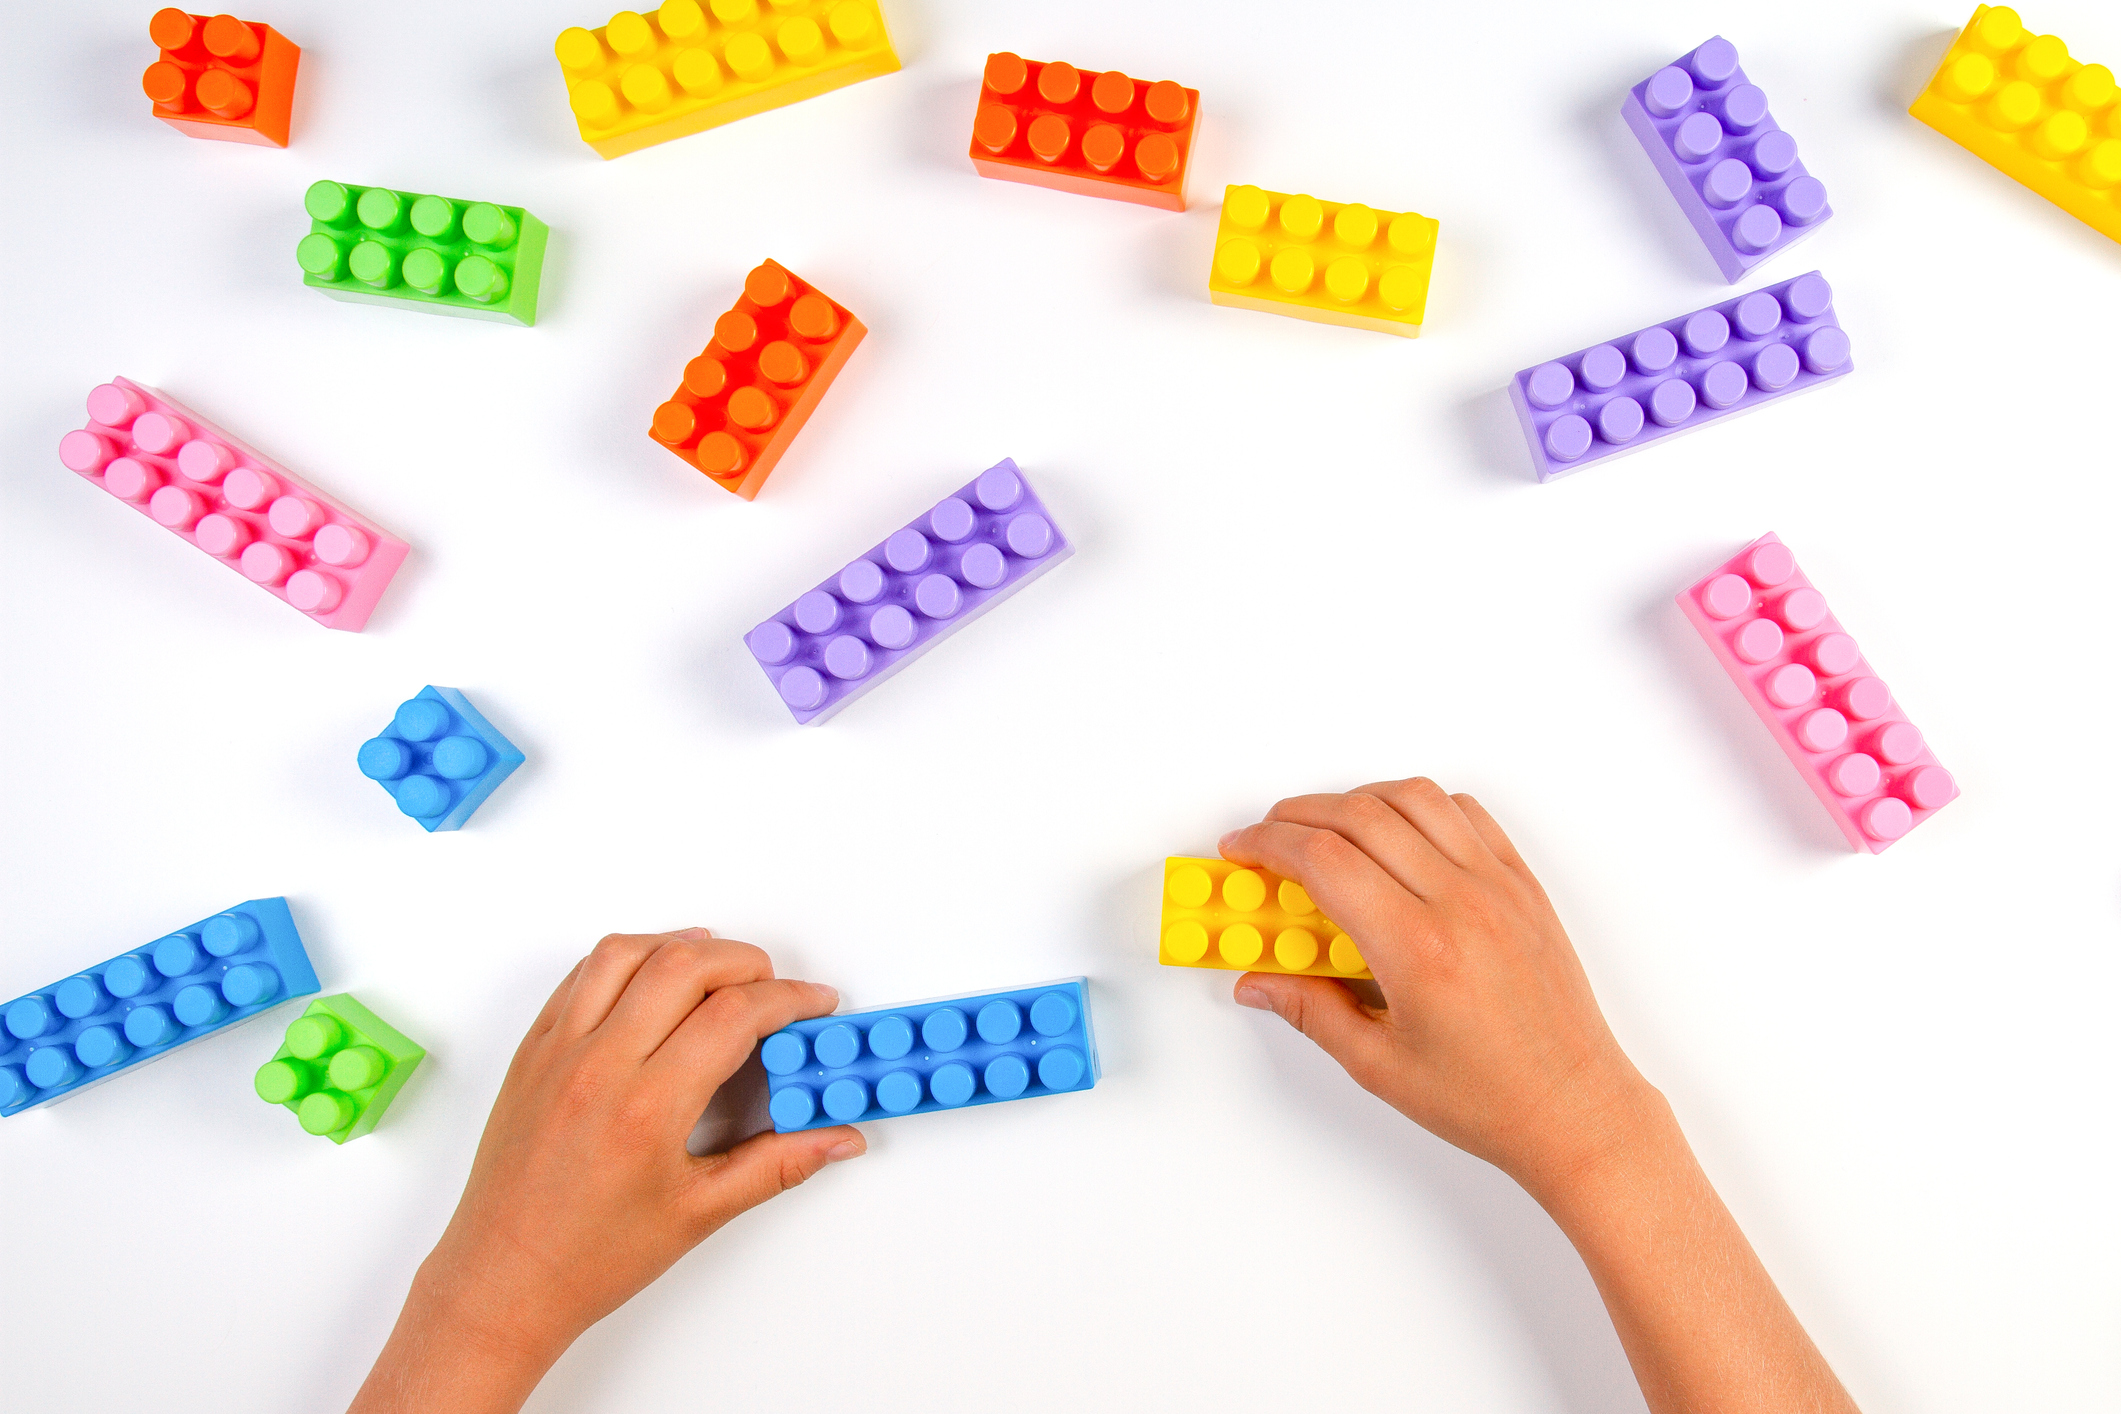 Kid hands play with colorful plastic construction blocks on white background. Top view